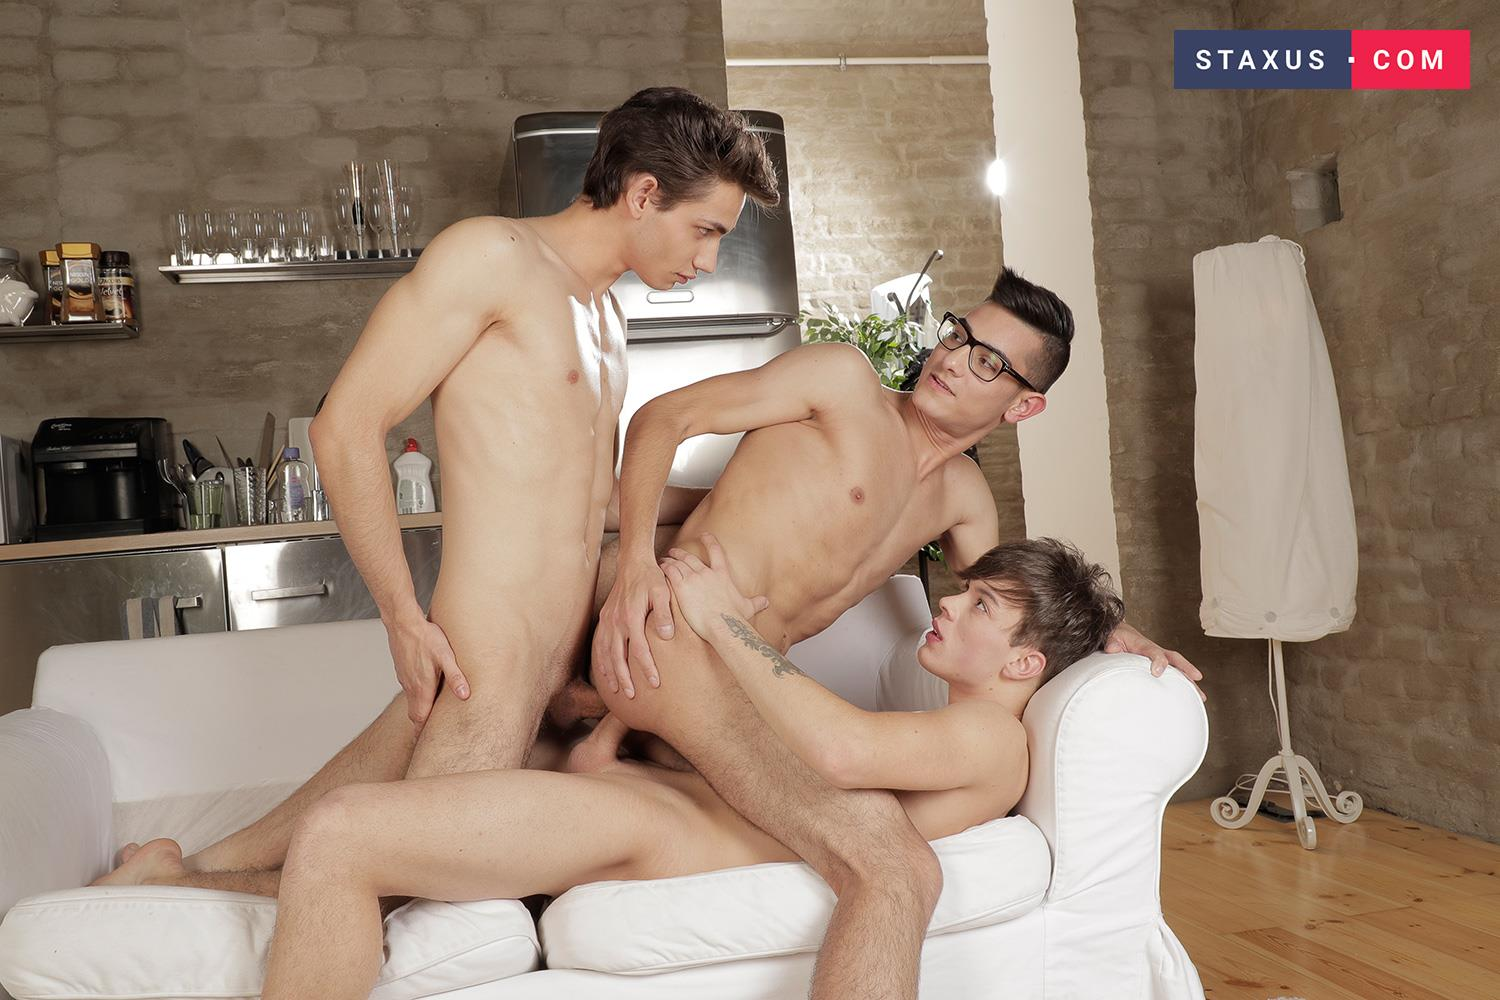 Staxus-Max-Grey-and-Orri-Gaul-and-Lior-Hod-Bareback-Twink-Sex-13 Nerdy Twink Takes Two Bareback Dicks Up The Butt